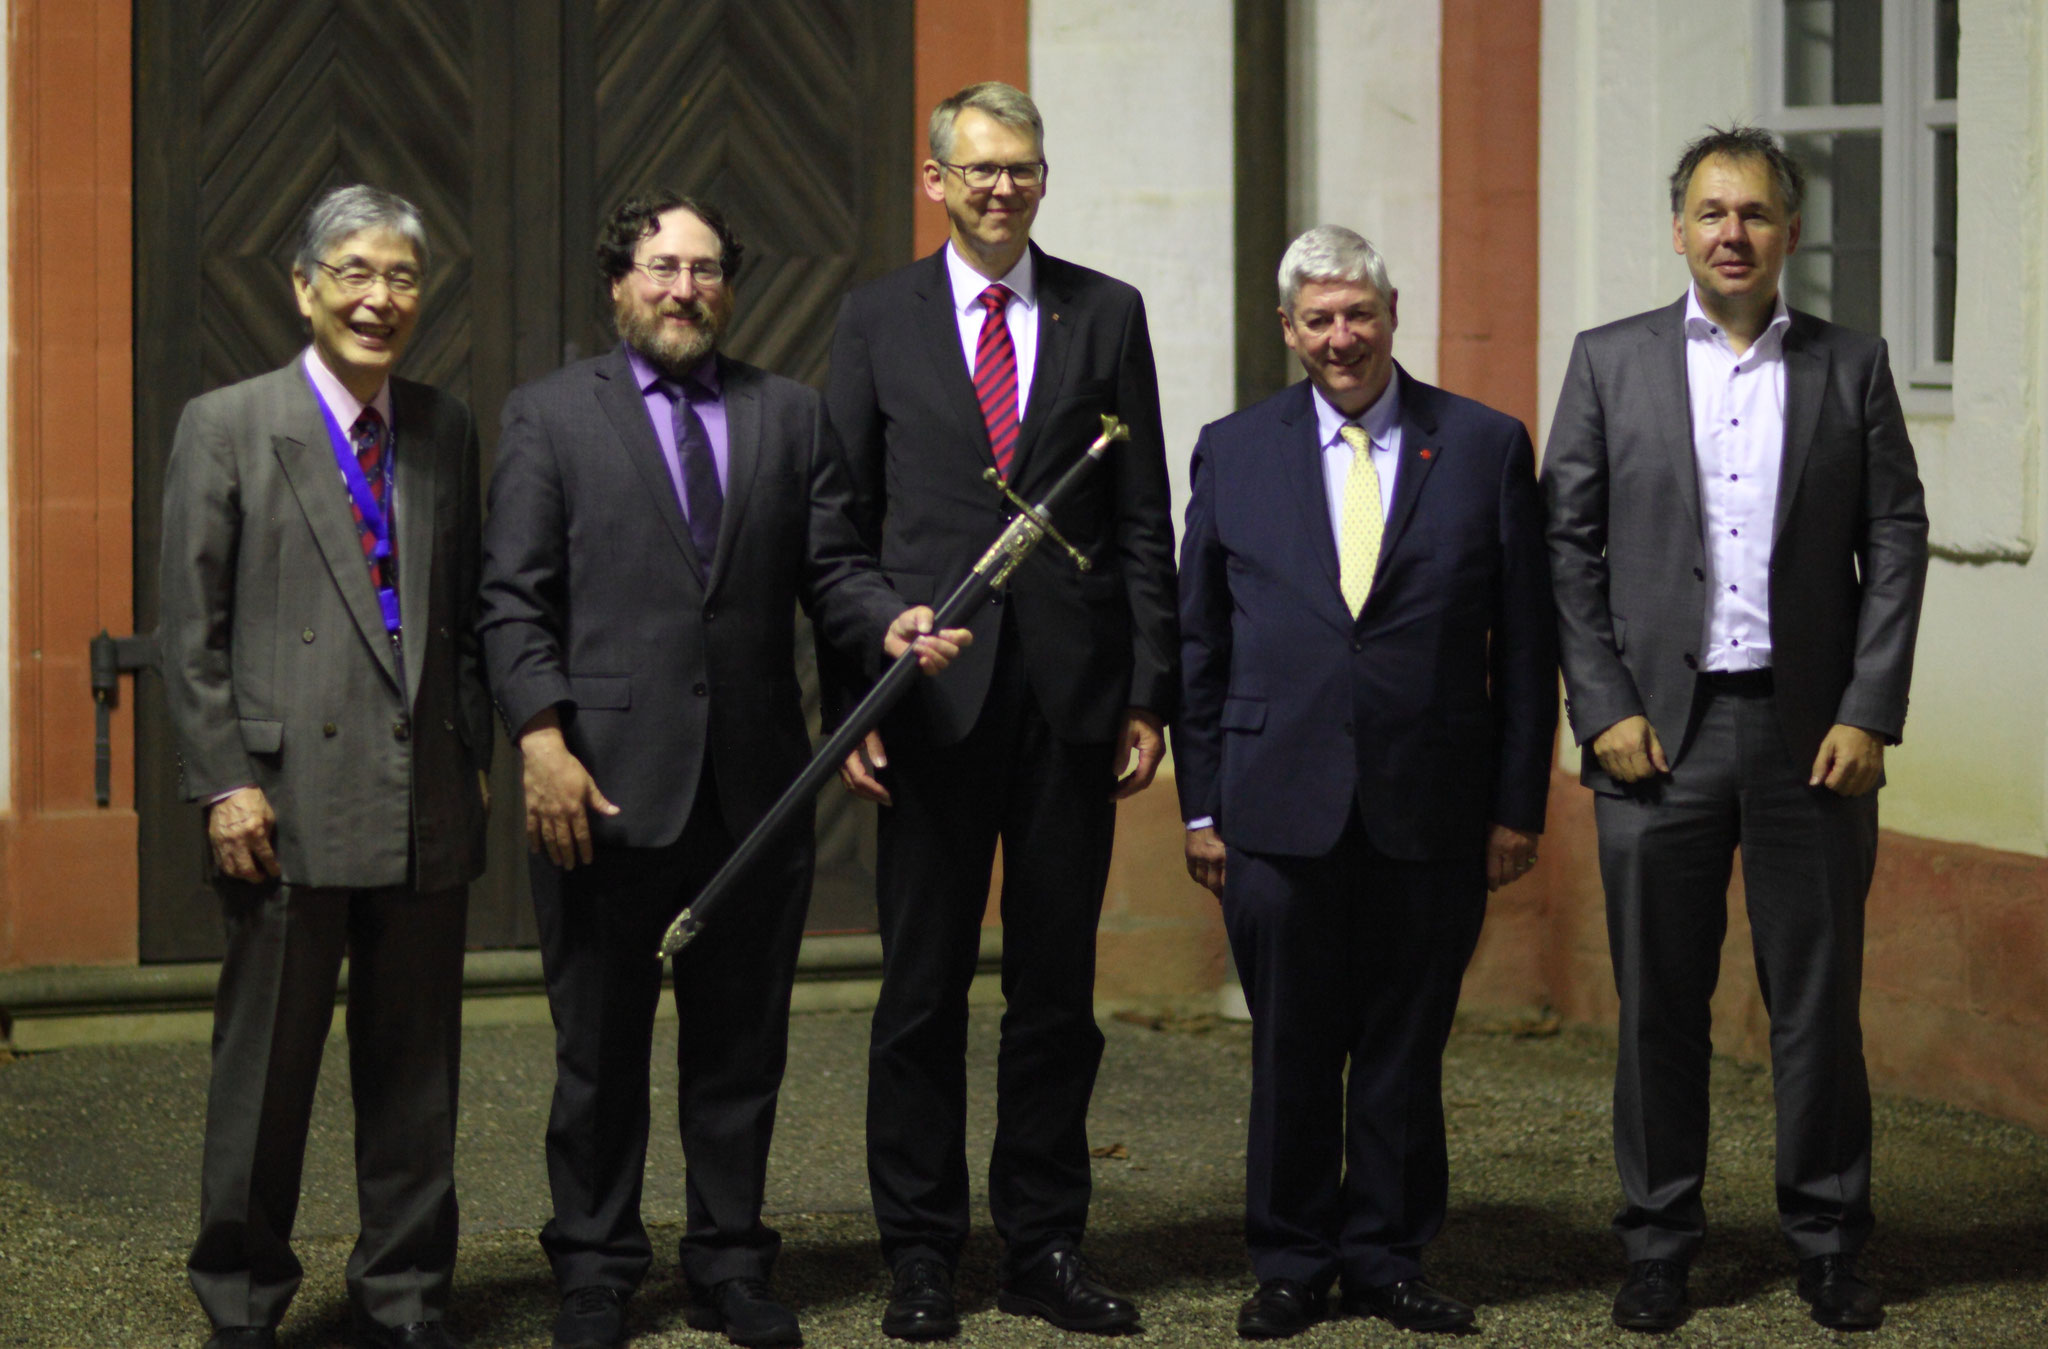 Four Knights of Laser Technology and one conference chair: Prof. Isamu Miyamoto, Prof. Craig B. Arnold, Prof. Frank Vollertsen, Prof. Jean-Pierre Kruth and Prof. Michael Schmidt (from left to right)